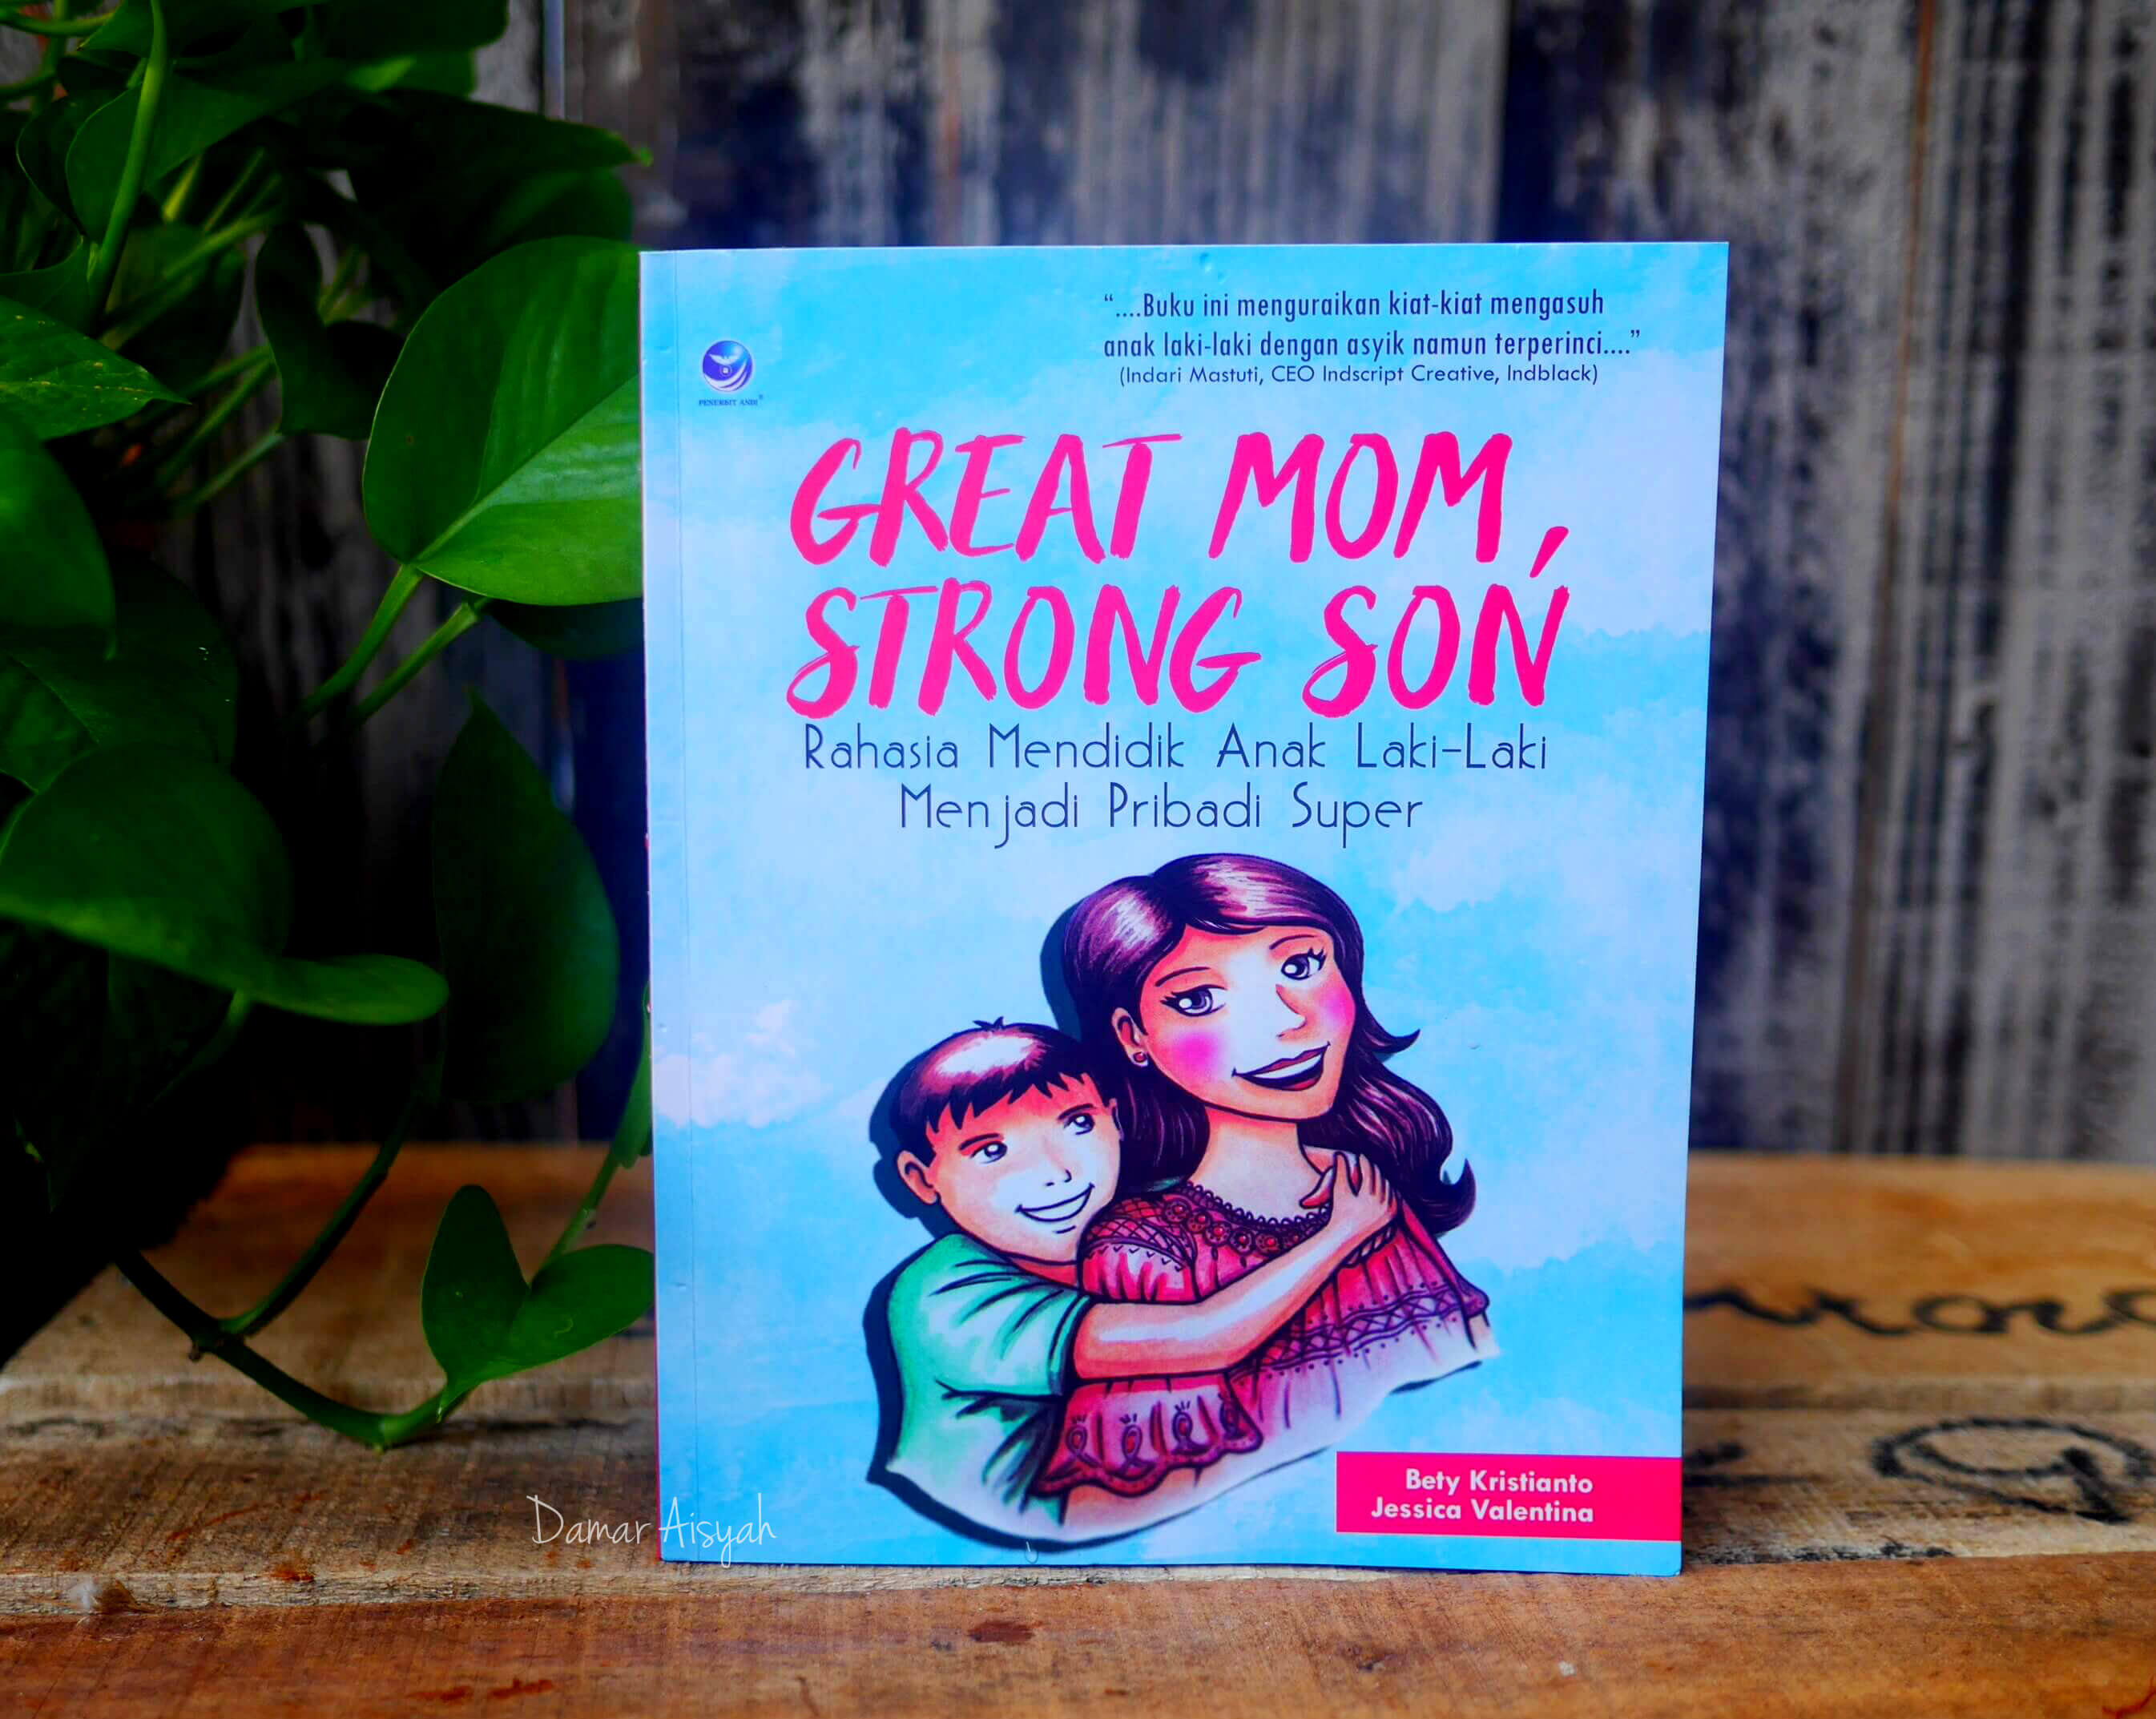 Great mom strong son